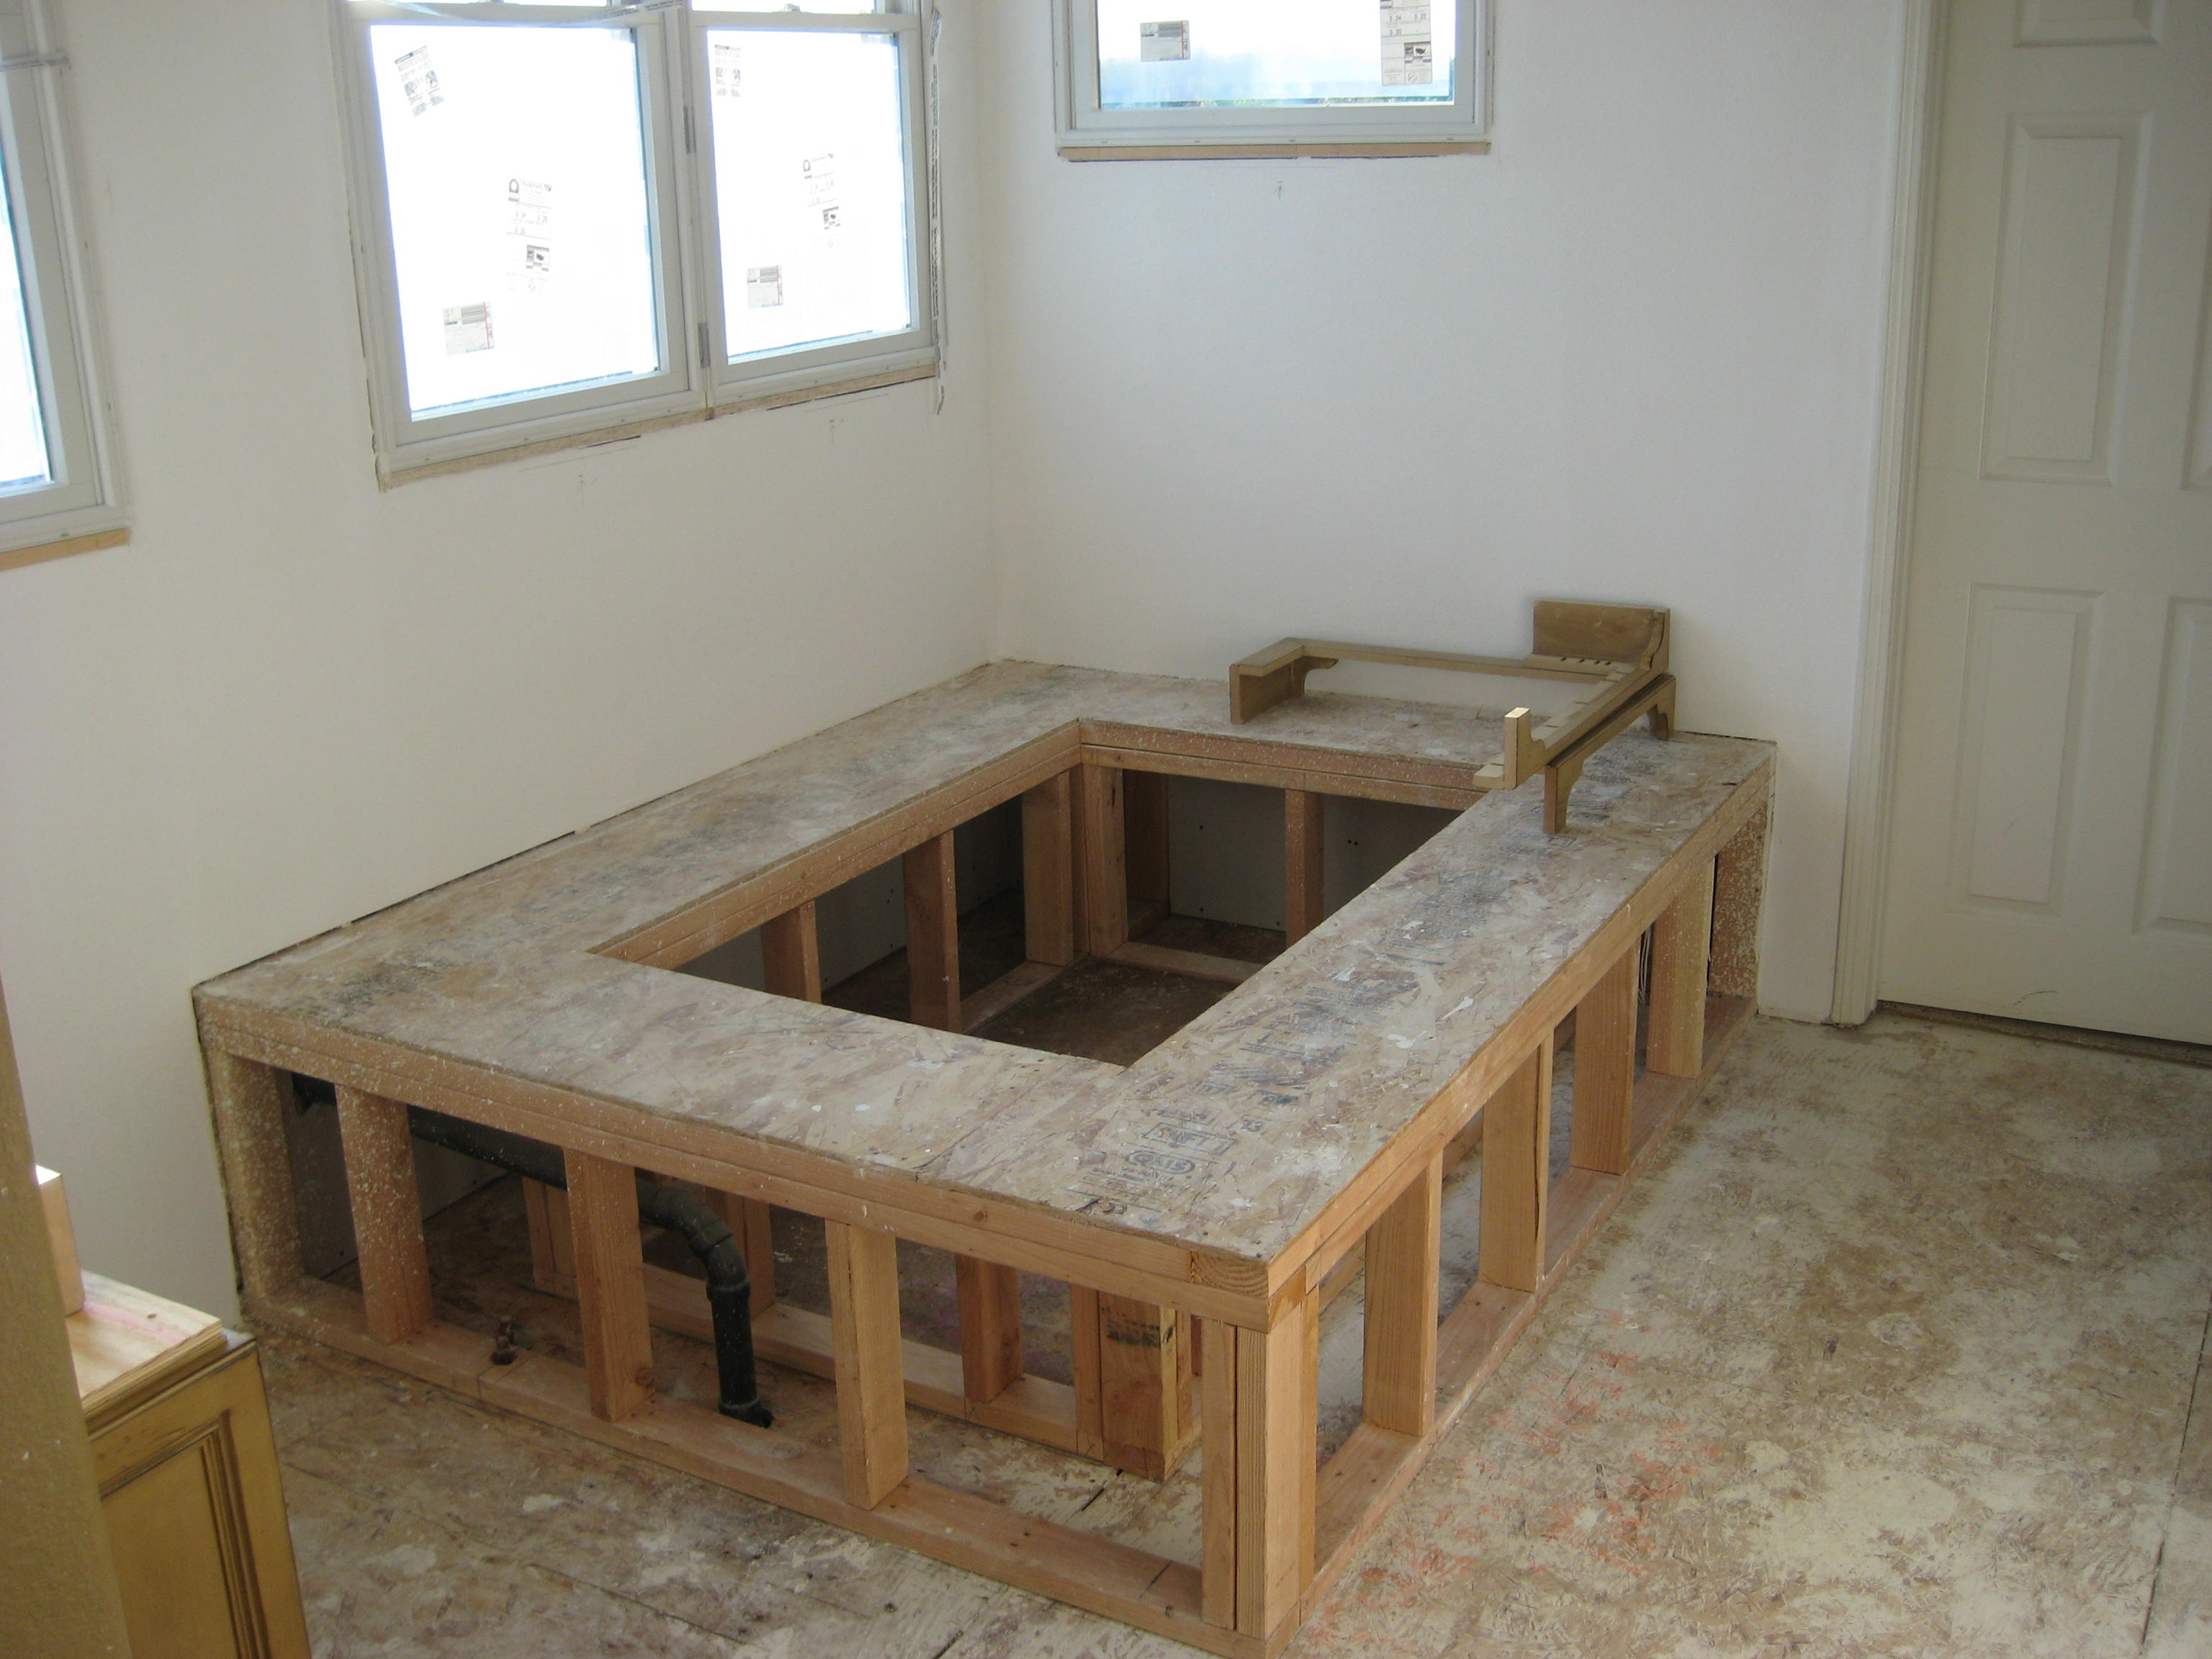 LowCost DIY Bathroom Remodeling Tips for New Homeowners by Local